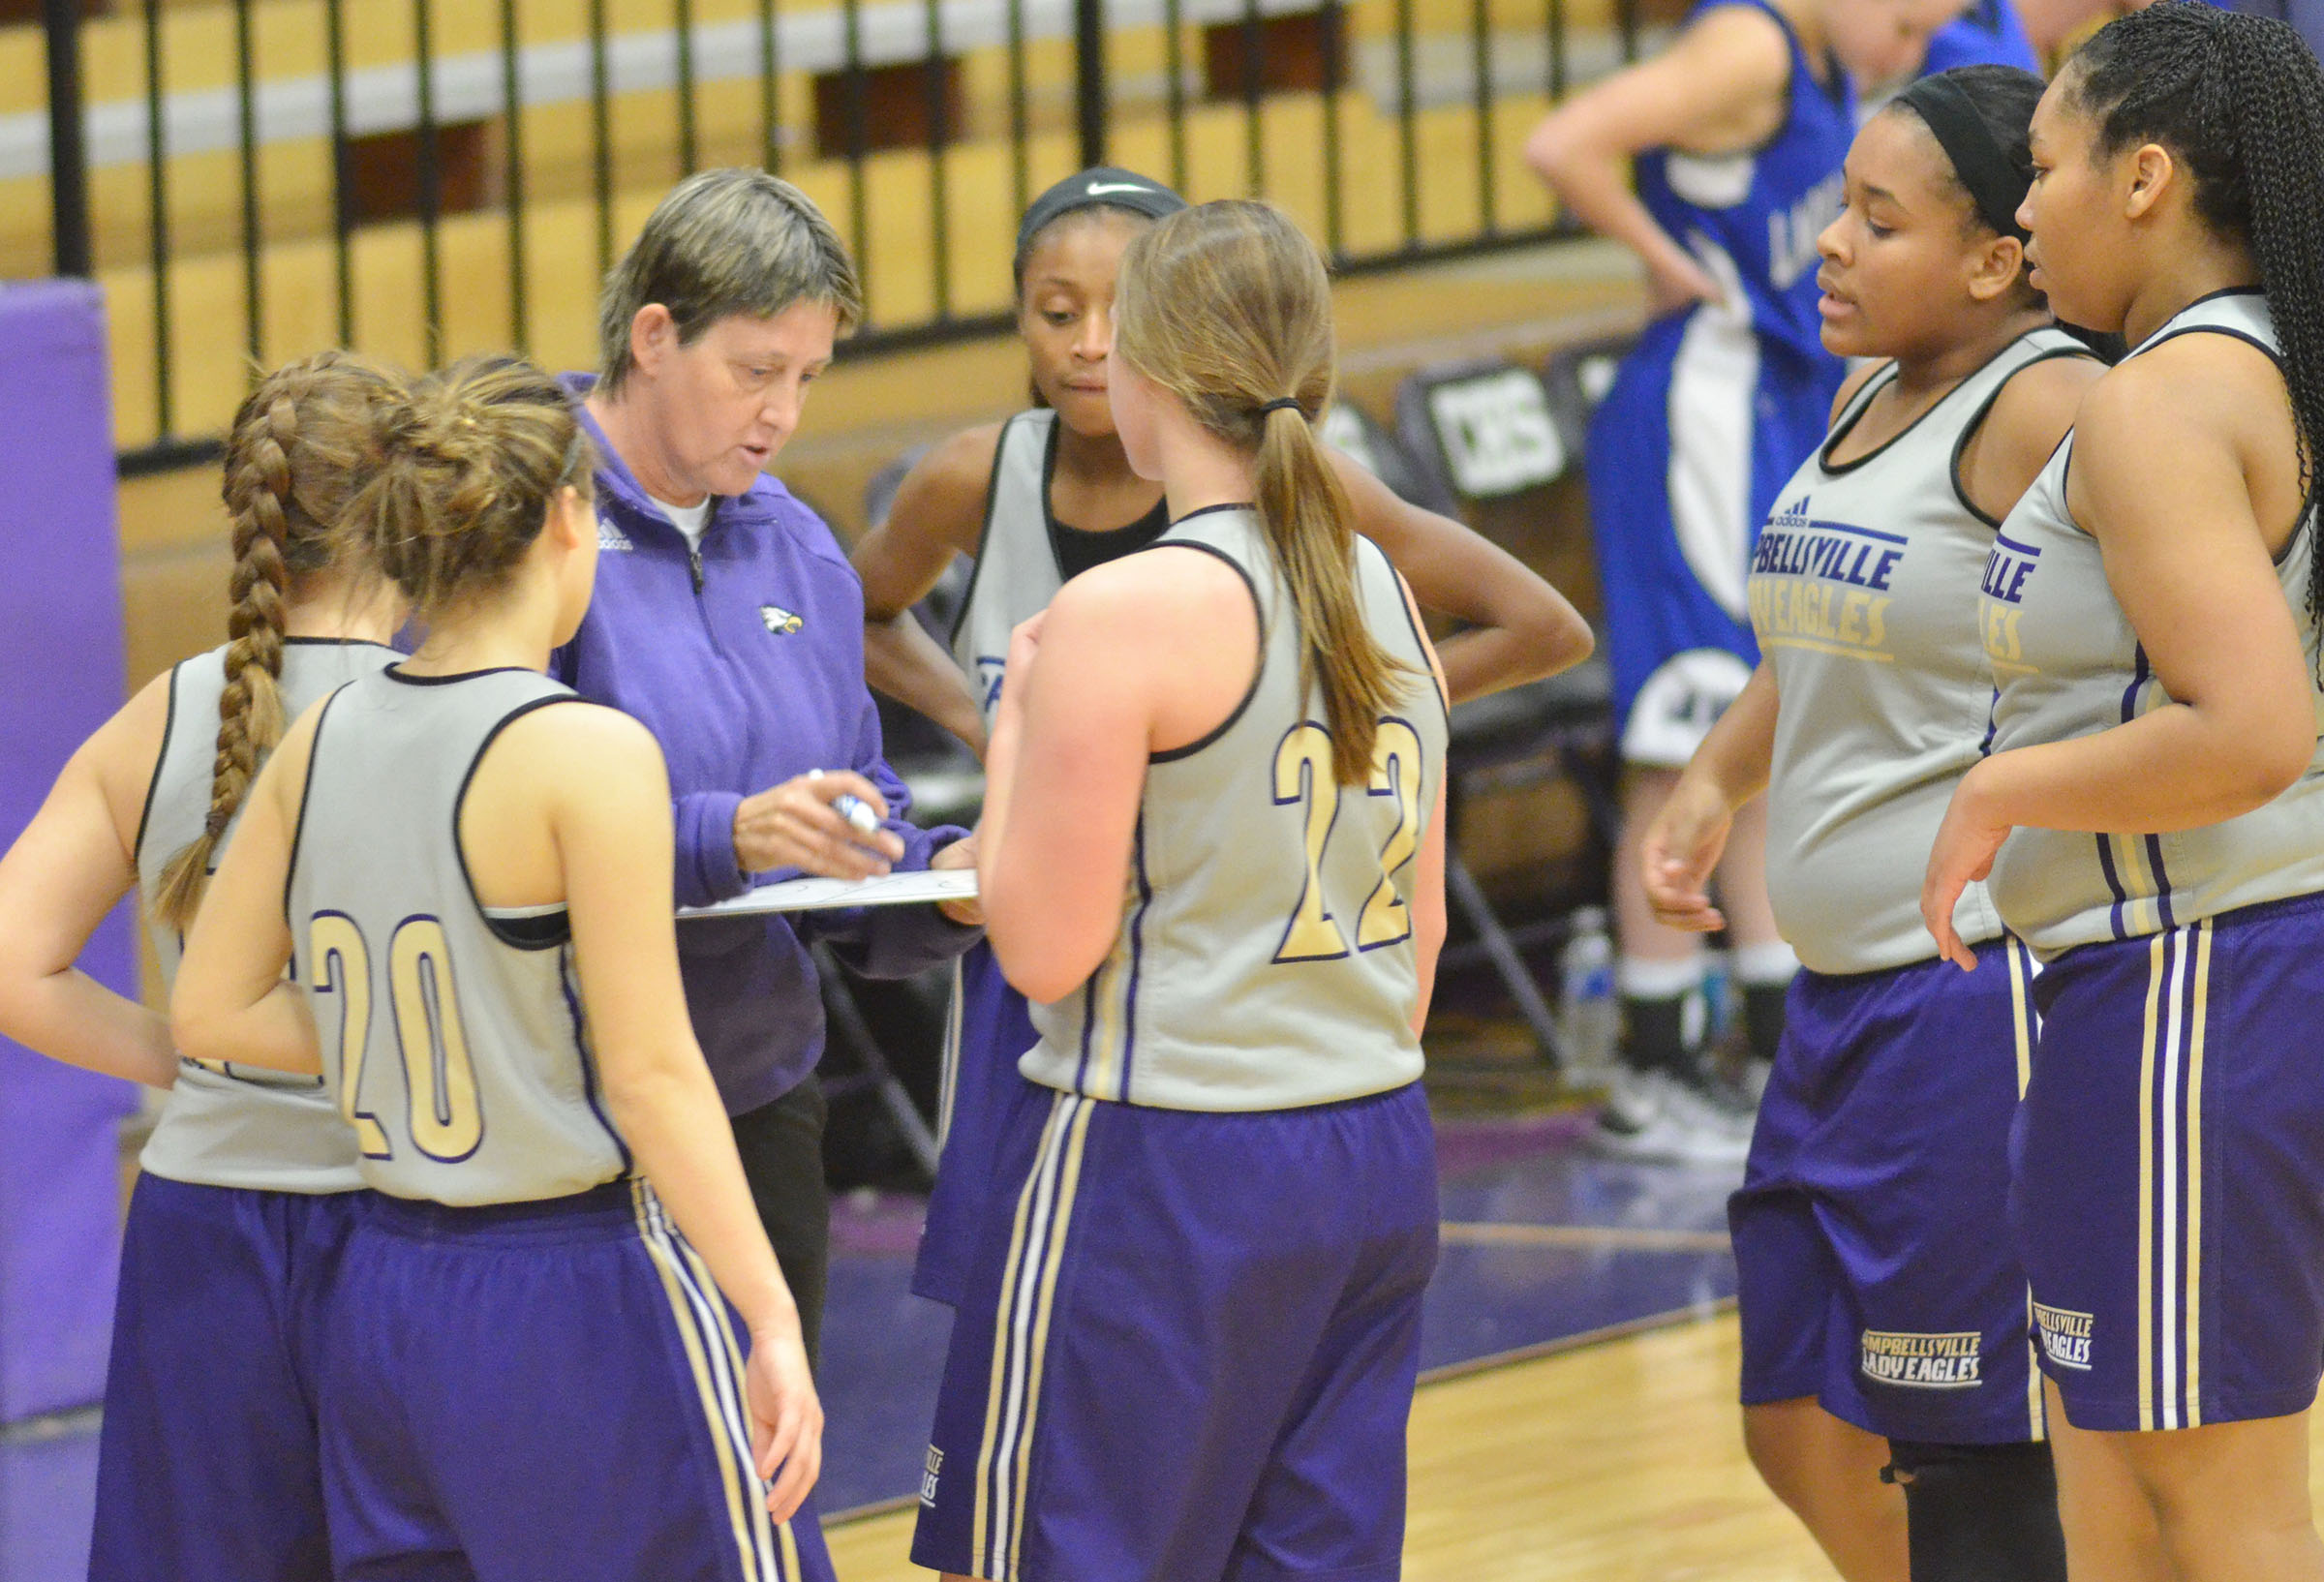 CHS girls' assistant basketball coach Katie Wilkerson talks to her players.